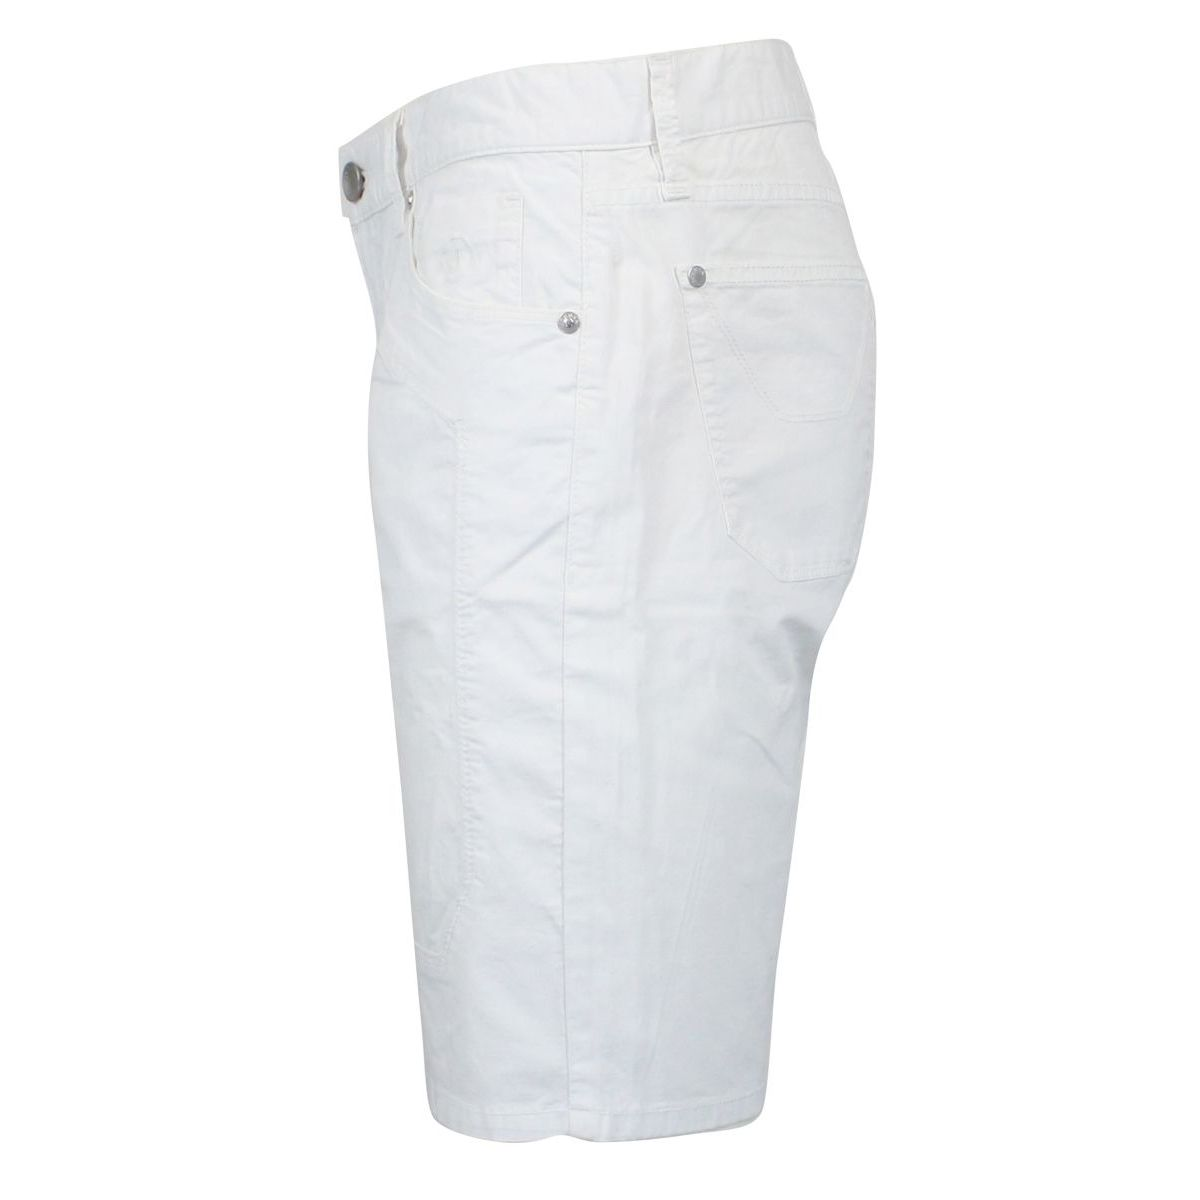 Stretch Bermuda with patches White Jeckerson